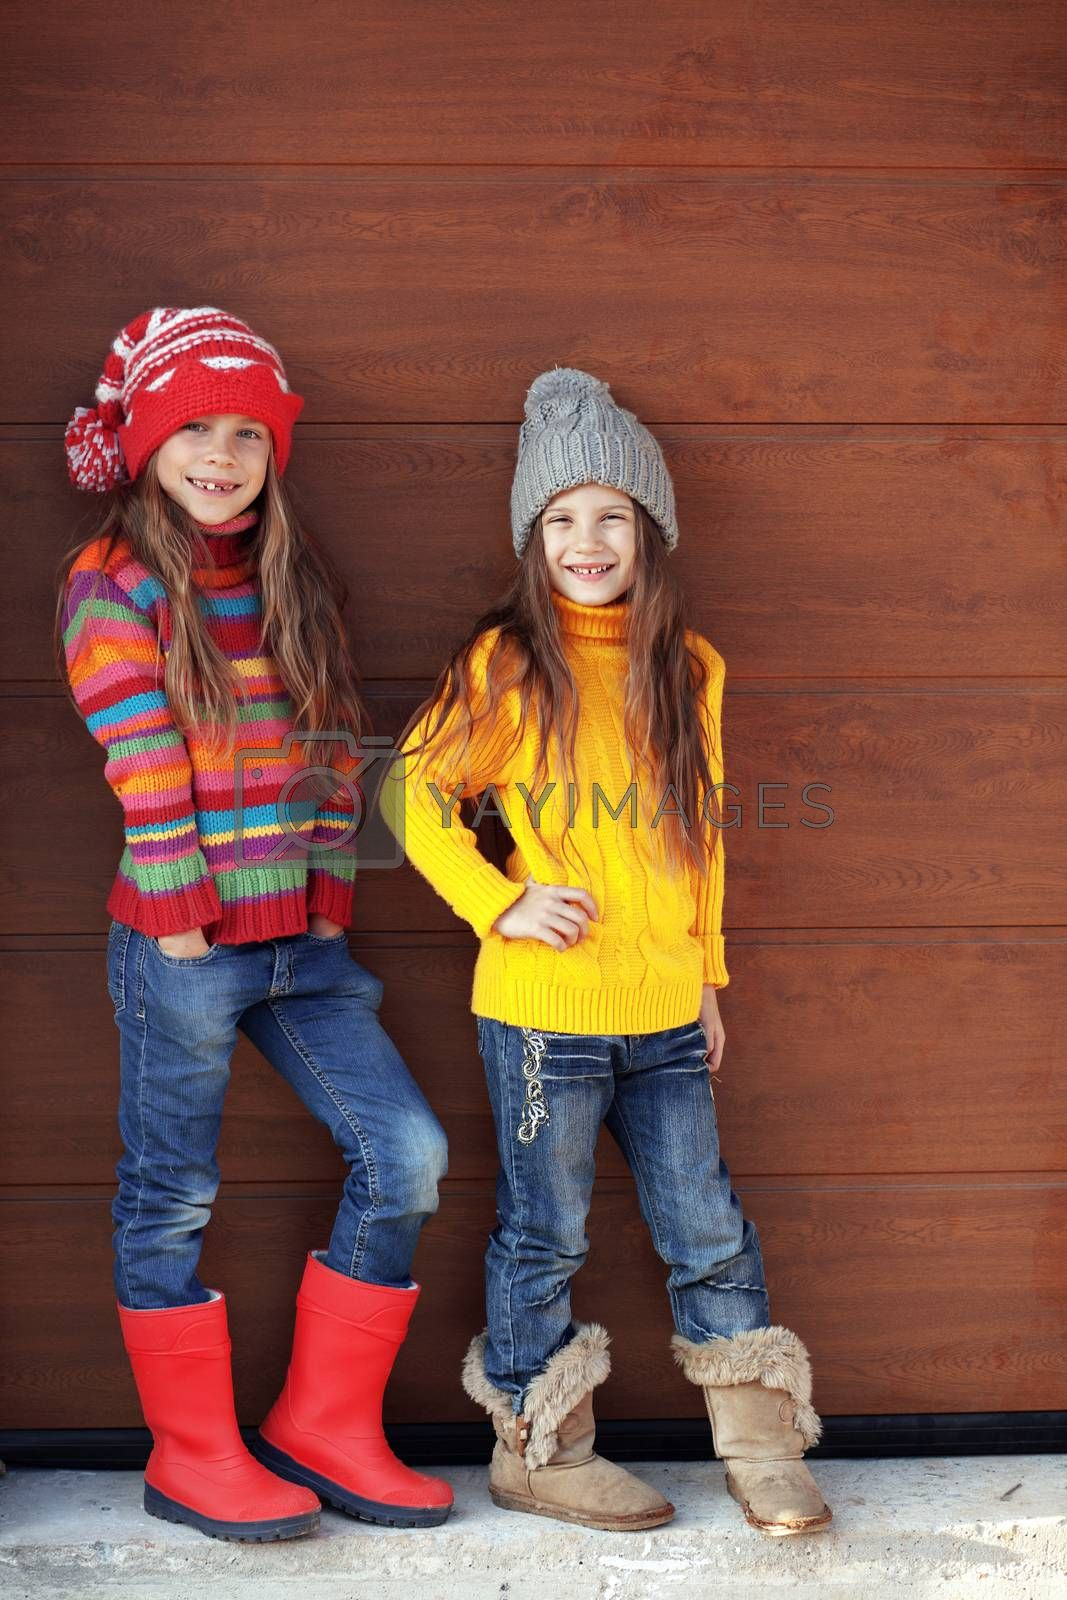 Cute little girls wearing knit winter clothes posing over wooden background